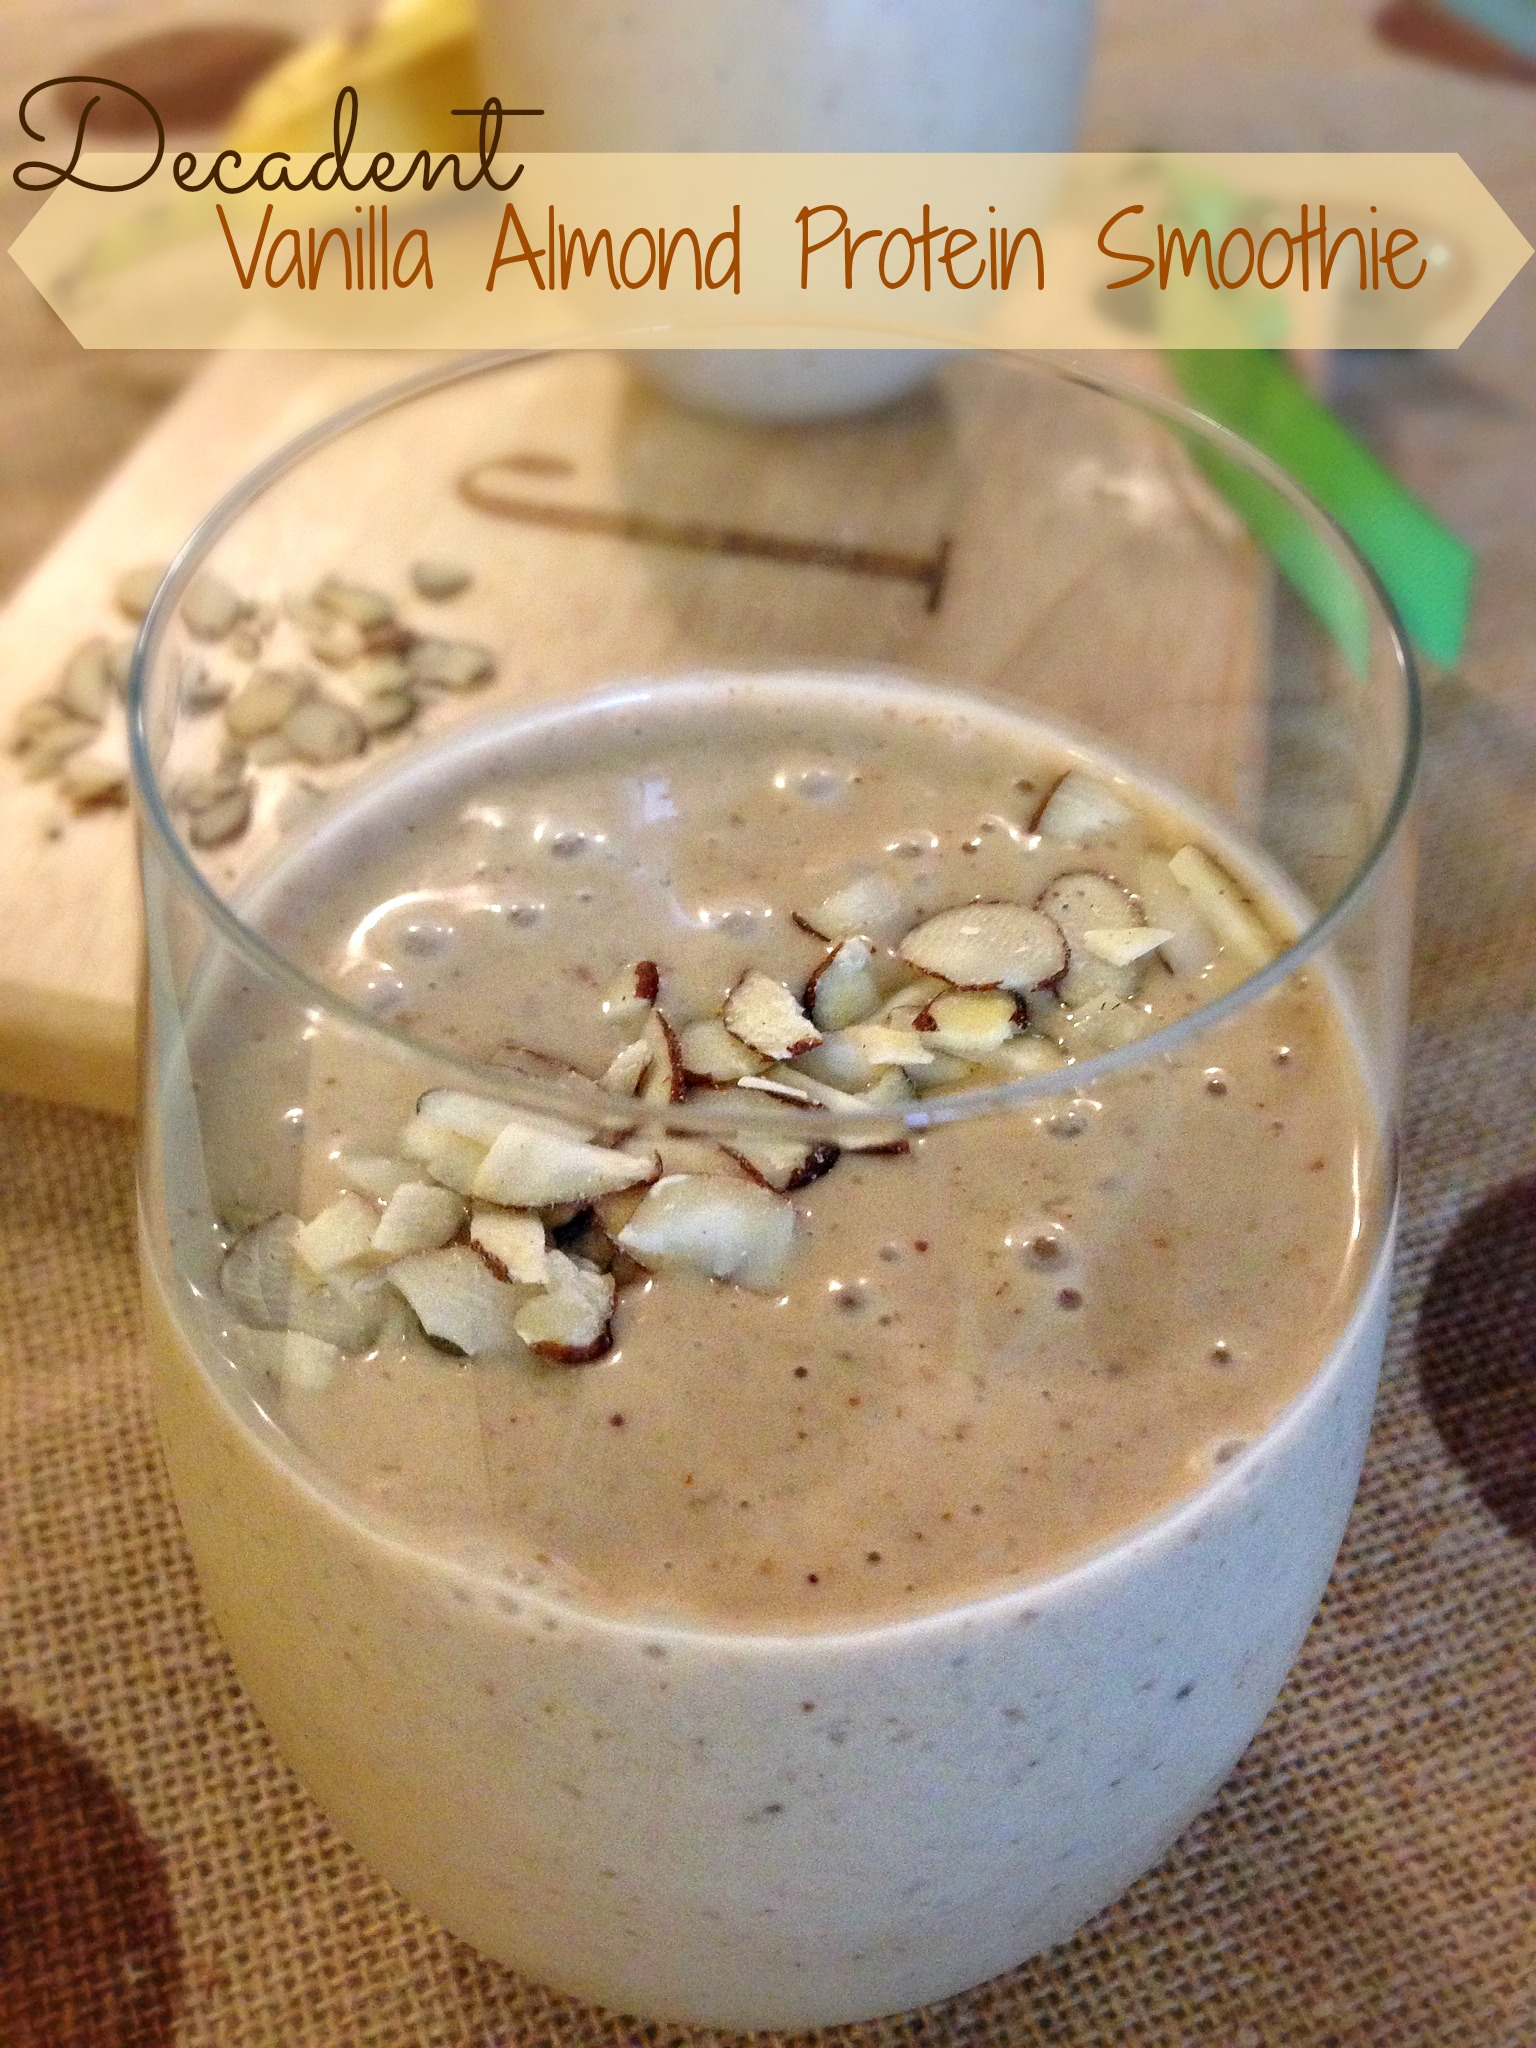 Decadent Vanilla Almond Protein Smoothie